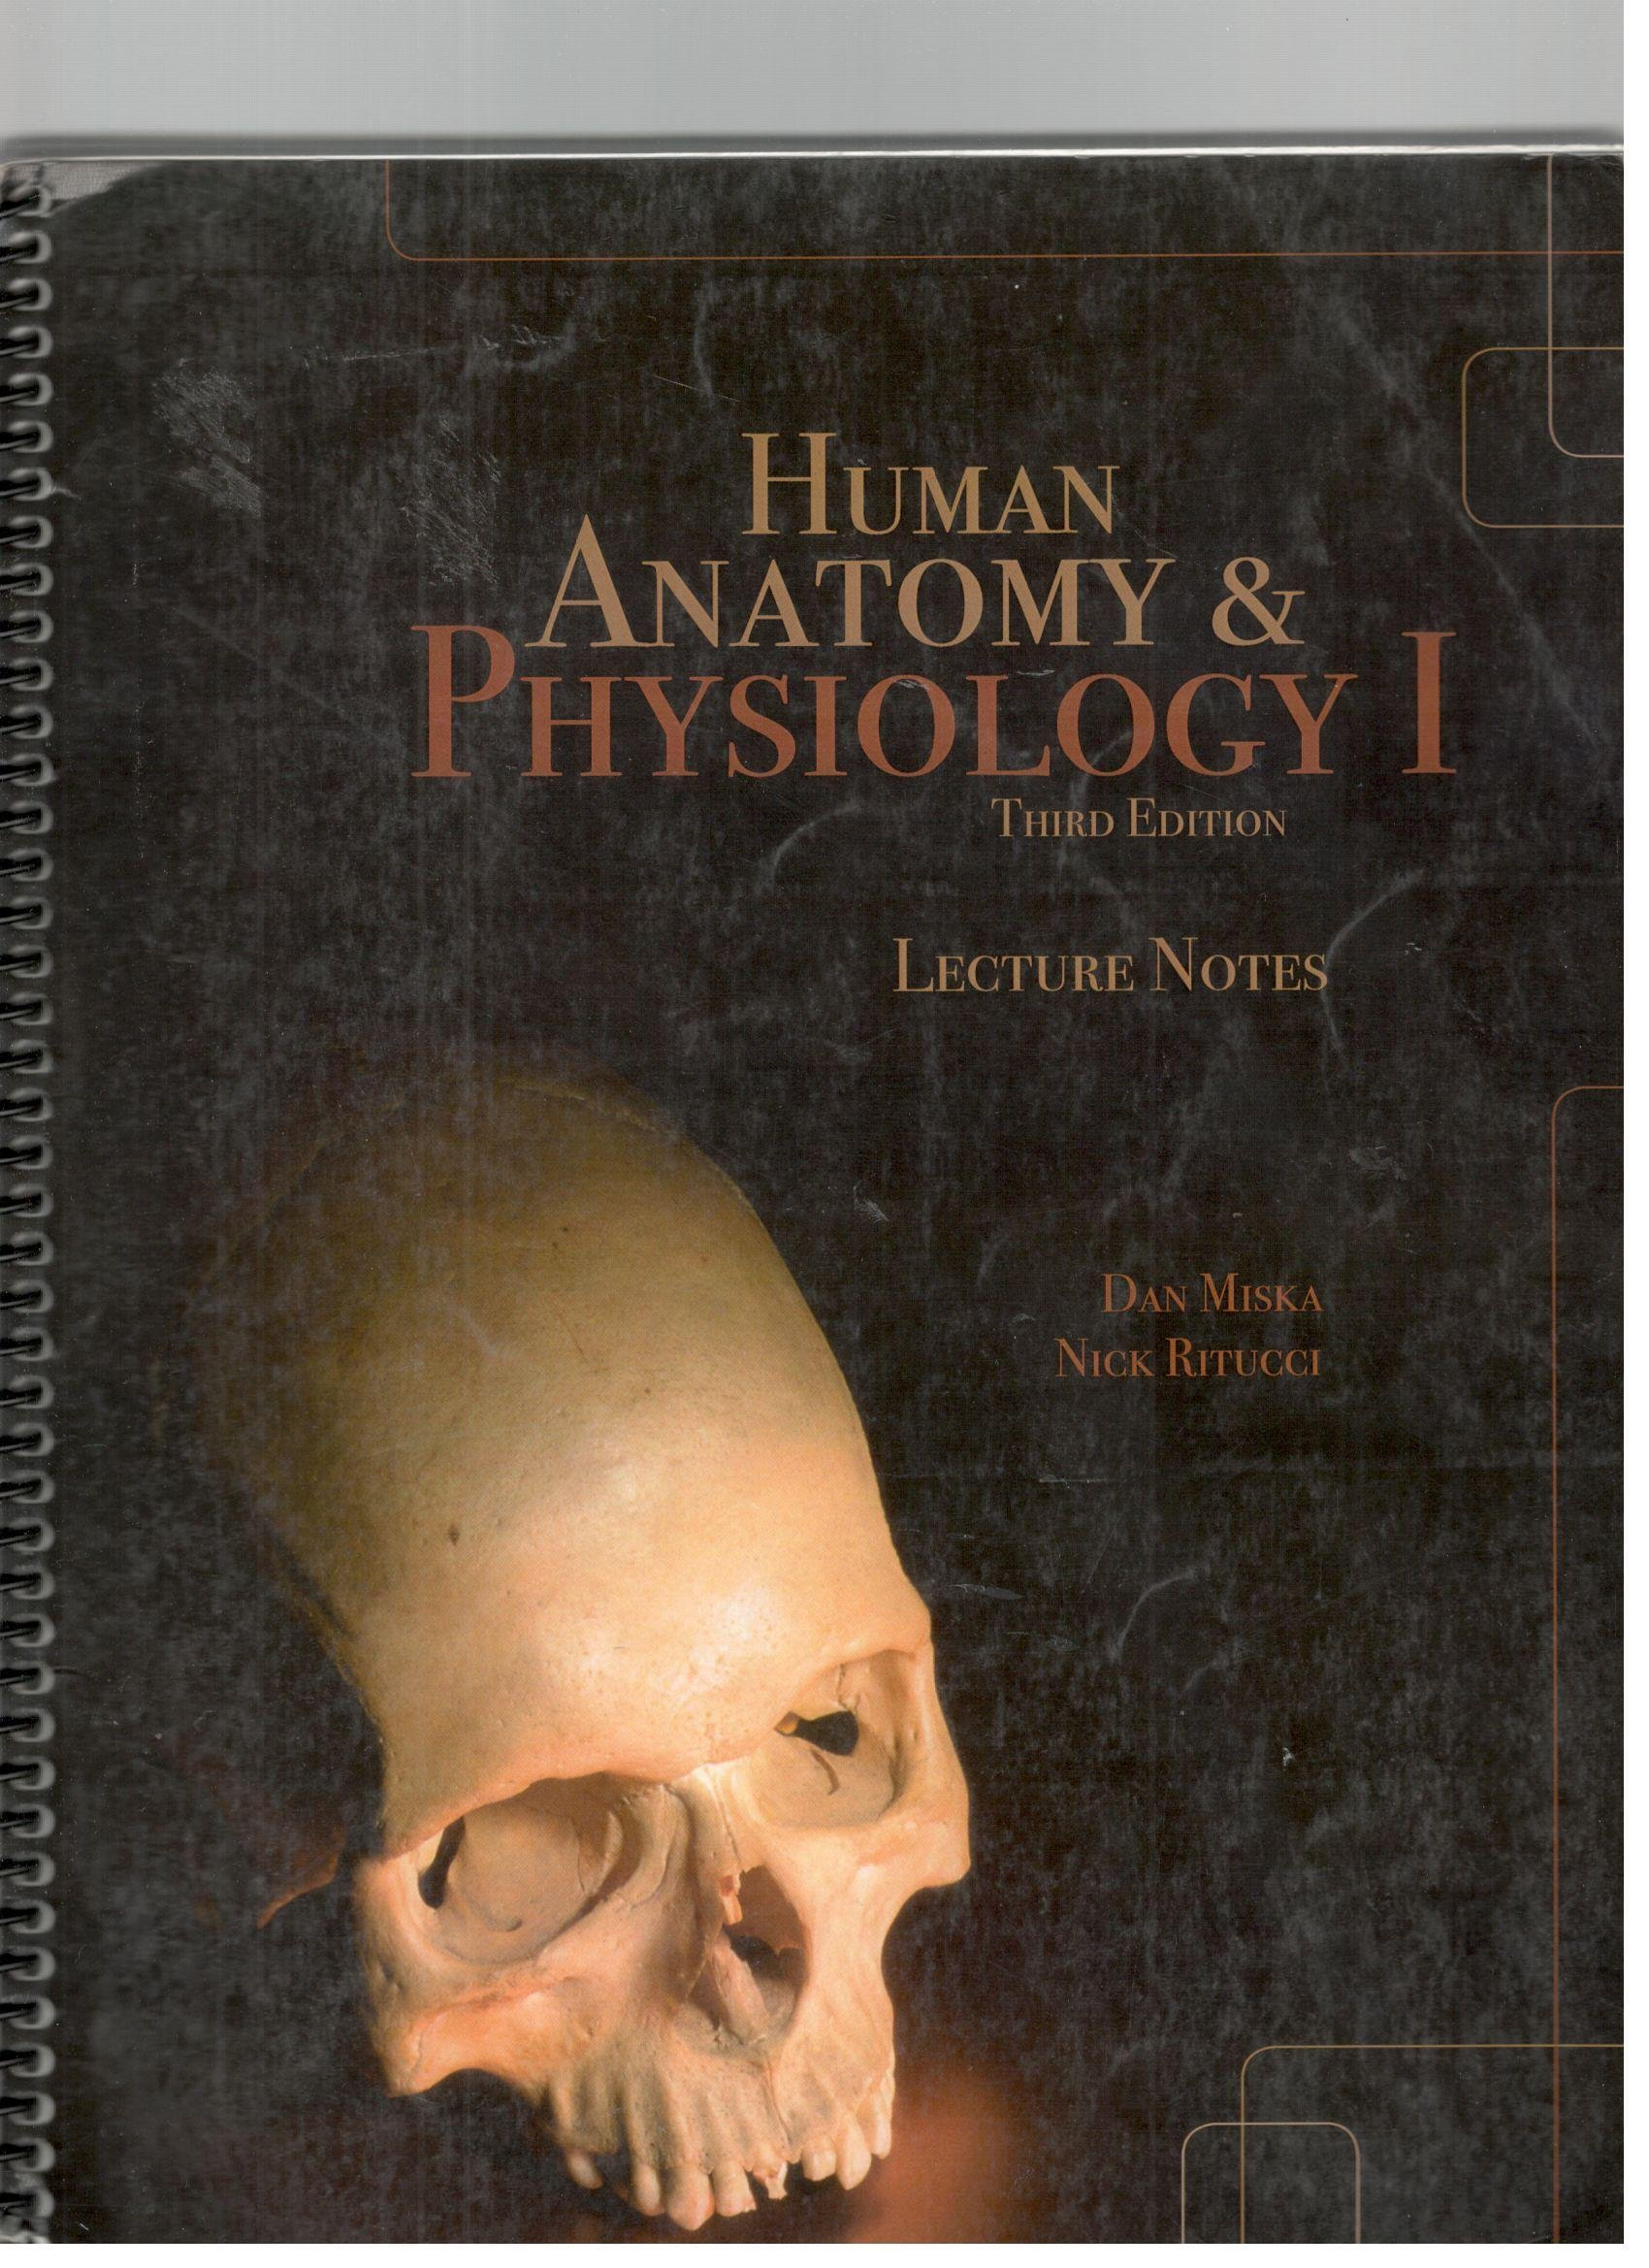 Human Anatomy And Physiology 1 Lecture Notes Dan Miska